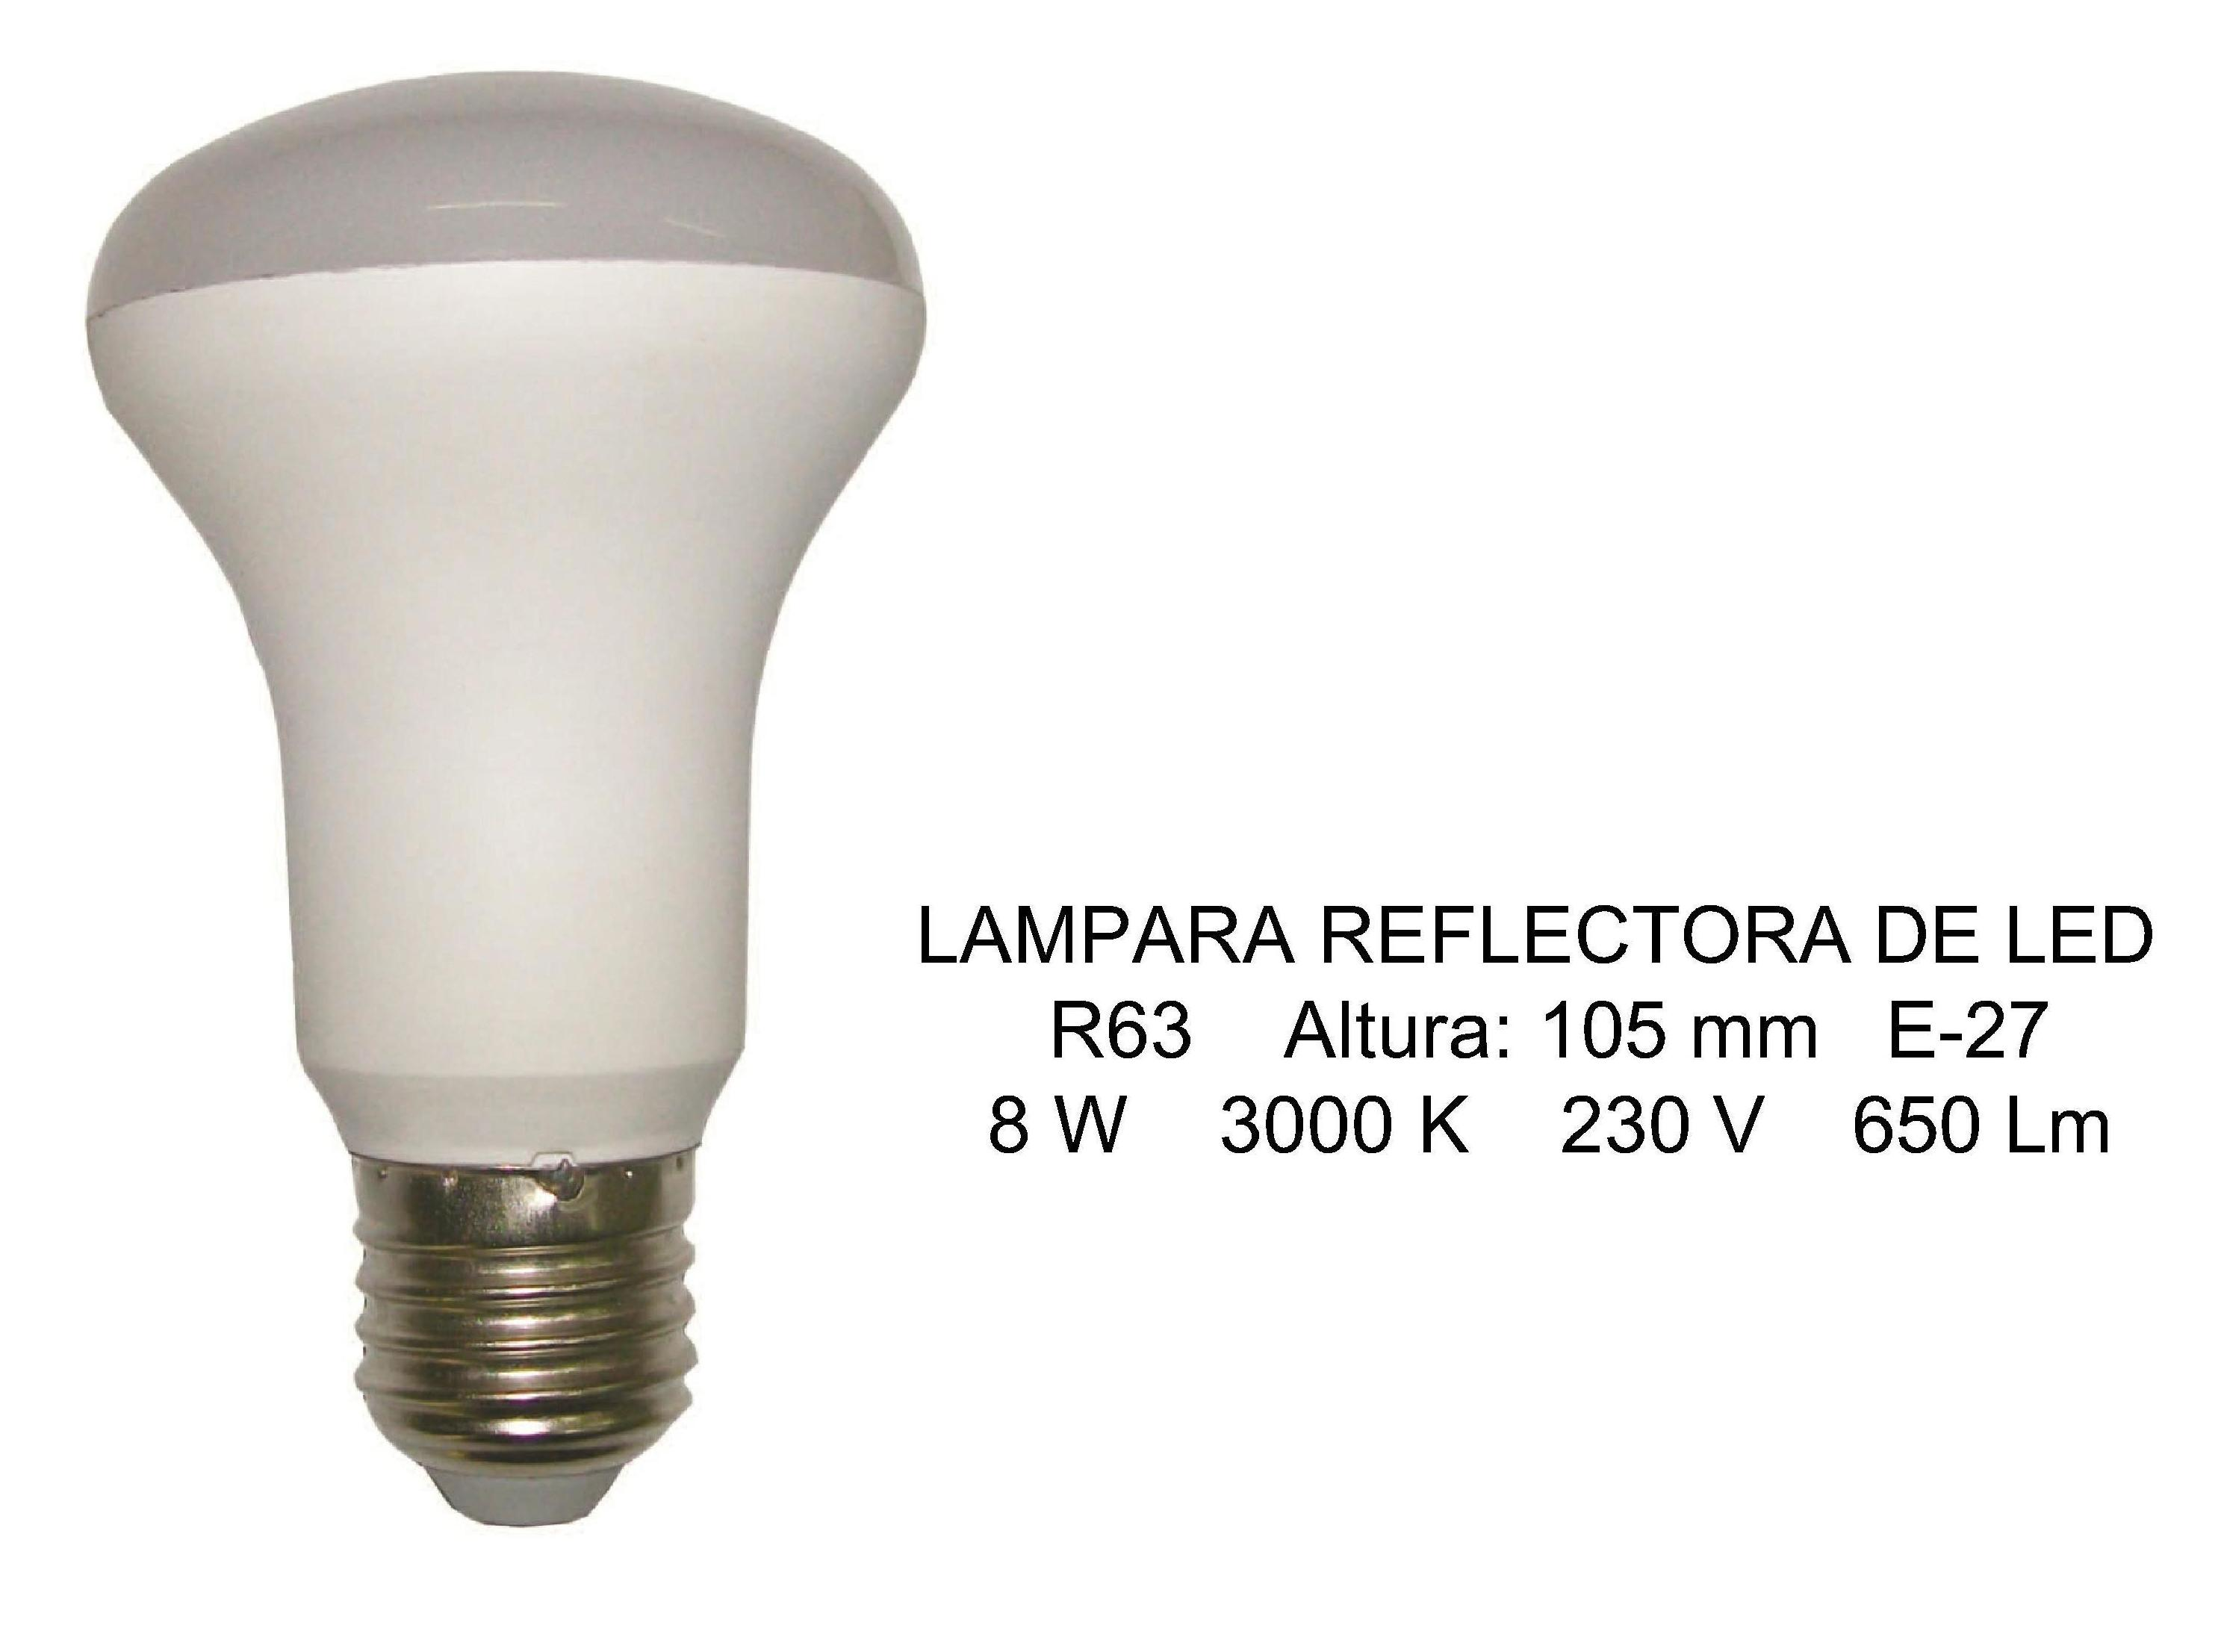 LAMPARA REFLECTORA LED R63